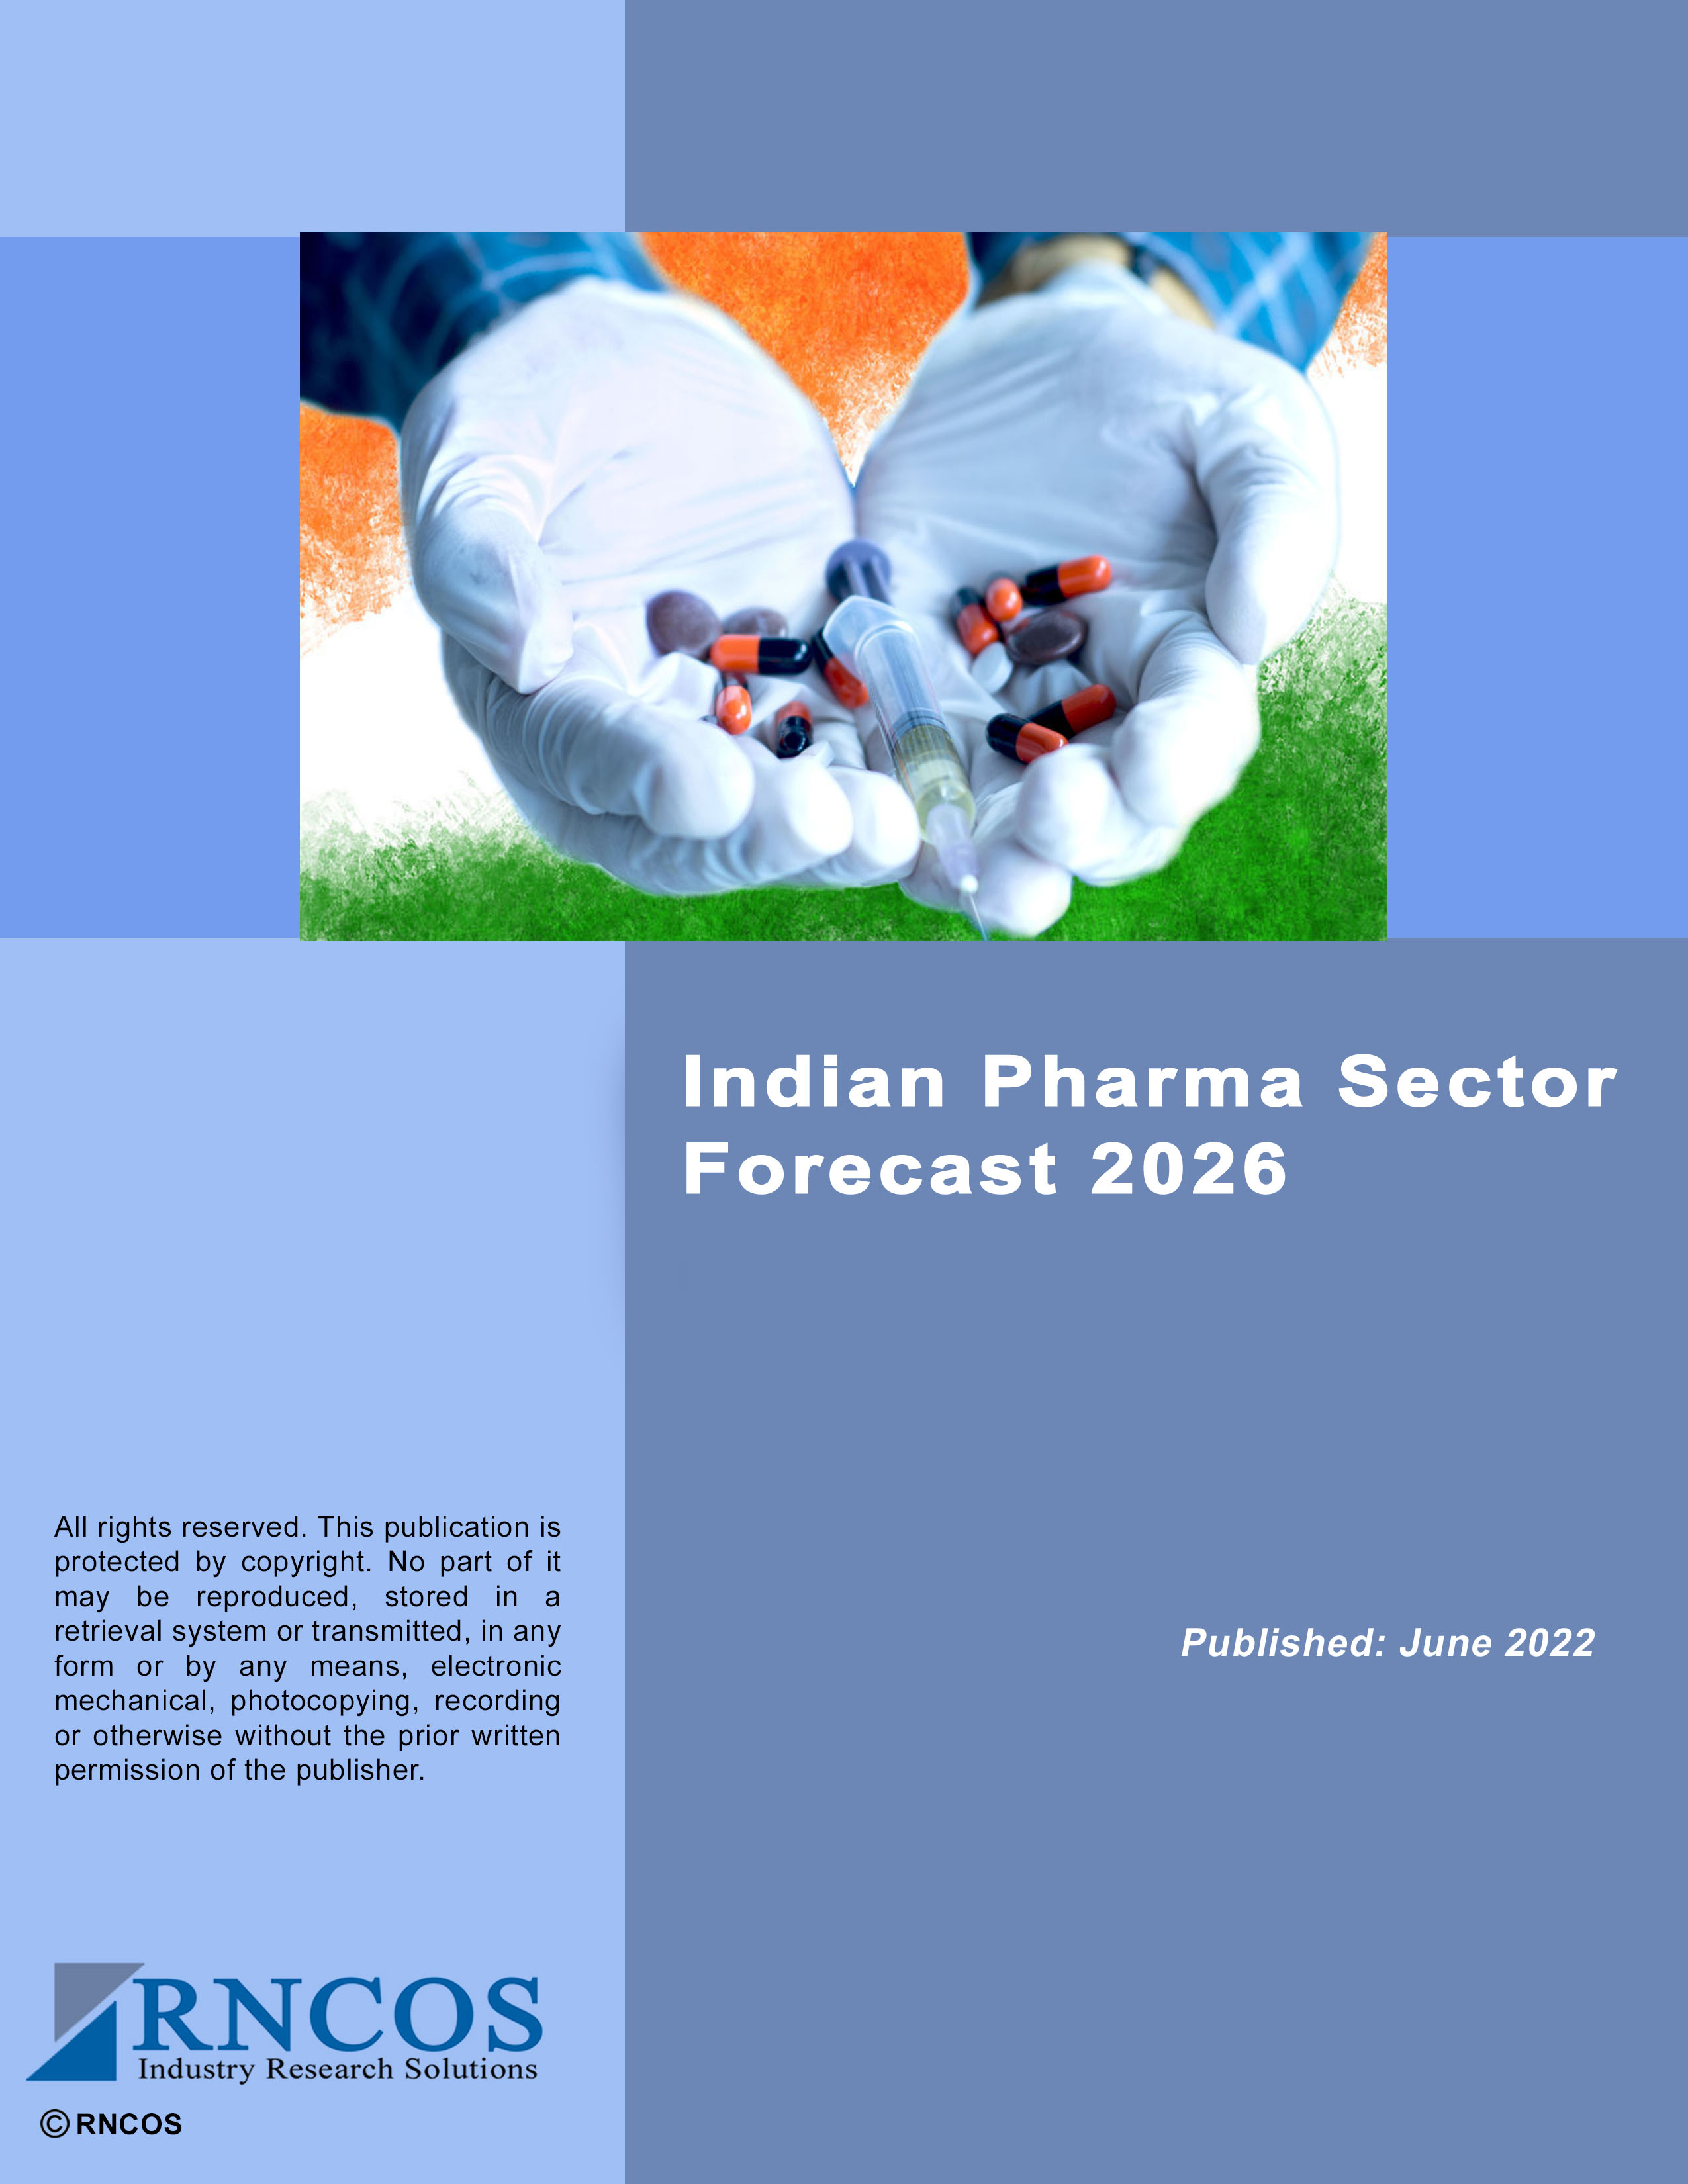 Indian Pharma Sector Forecast 2014